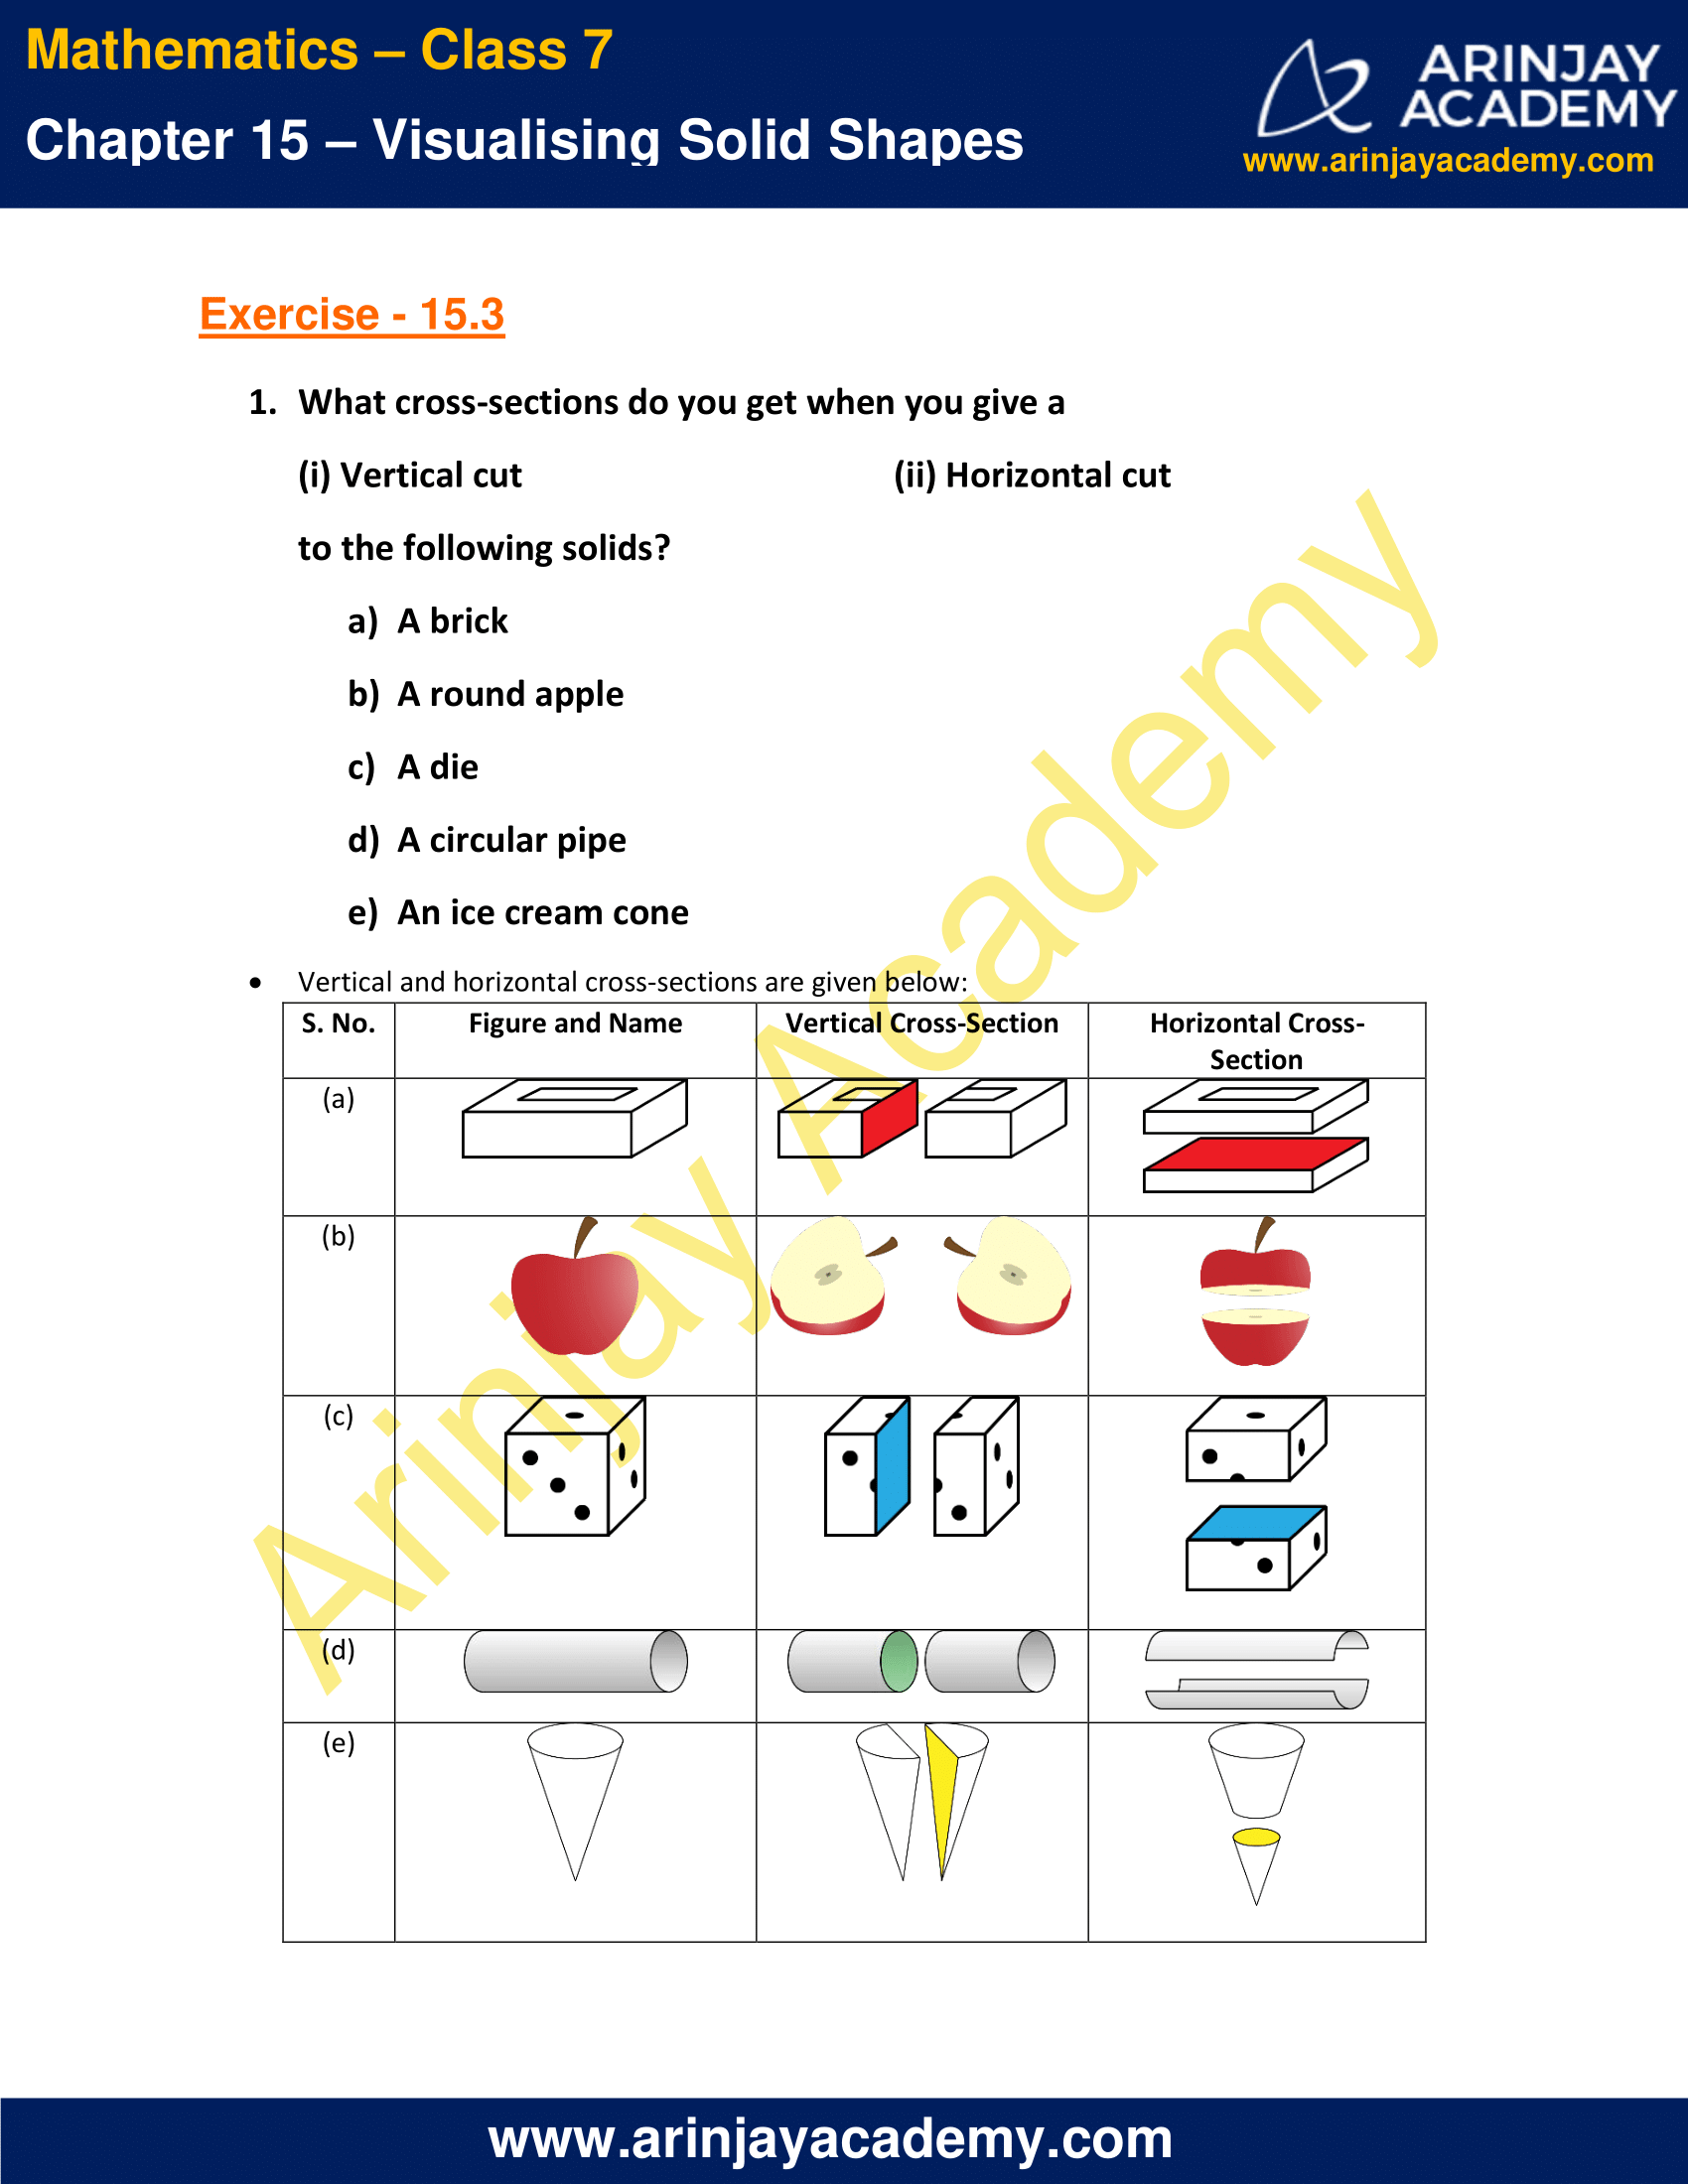 NCERT Solutions for Class 7 Maths Chapter 15 Exercise 15.3 image 1